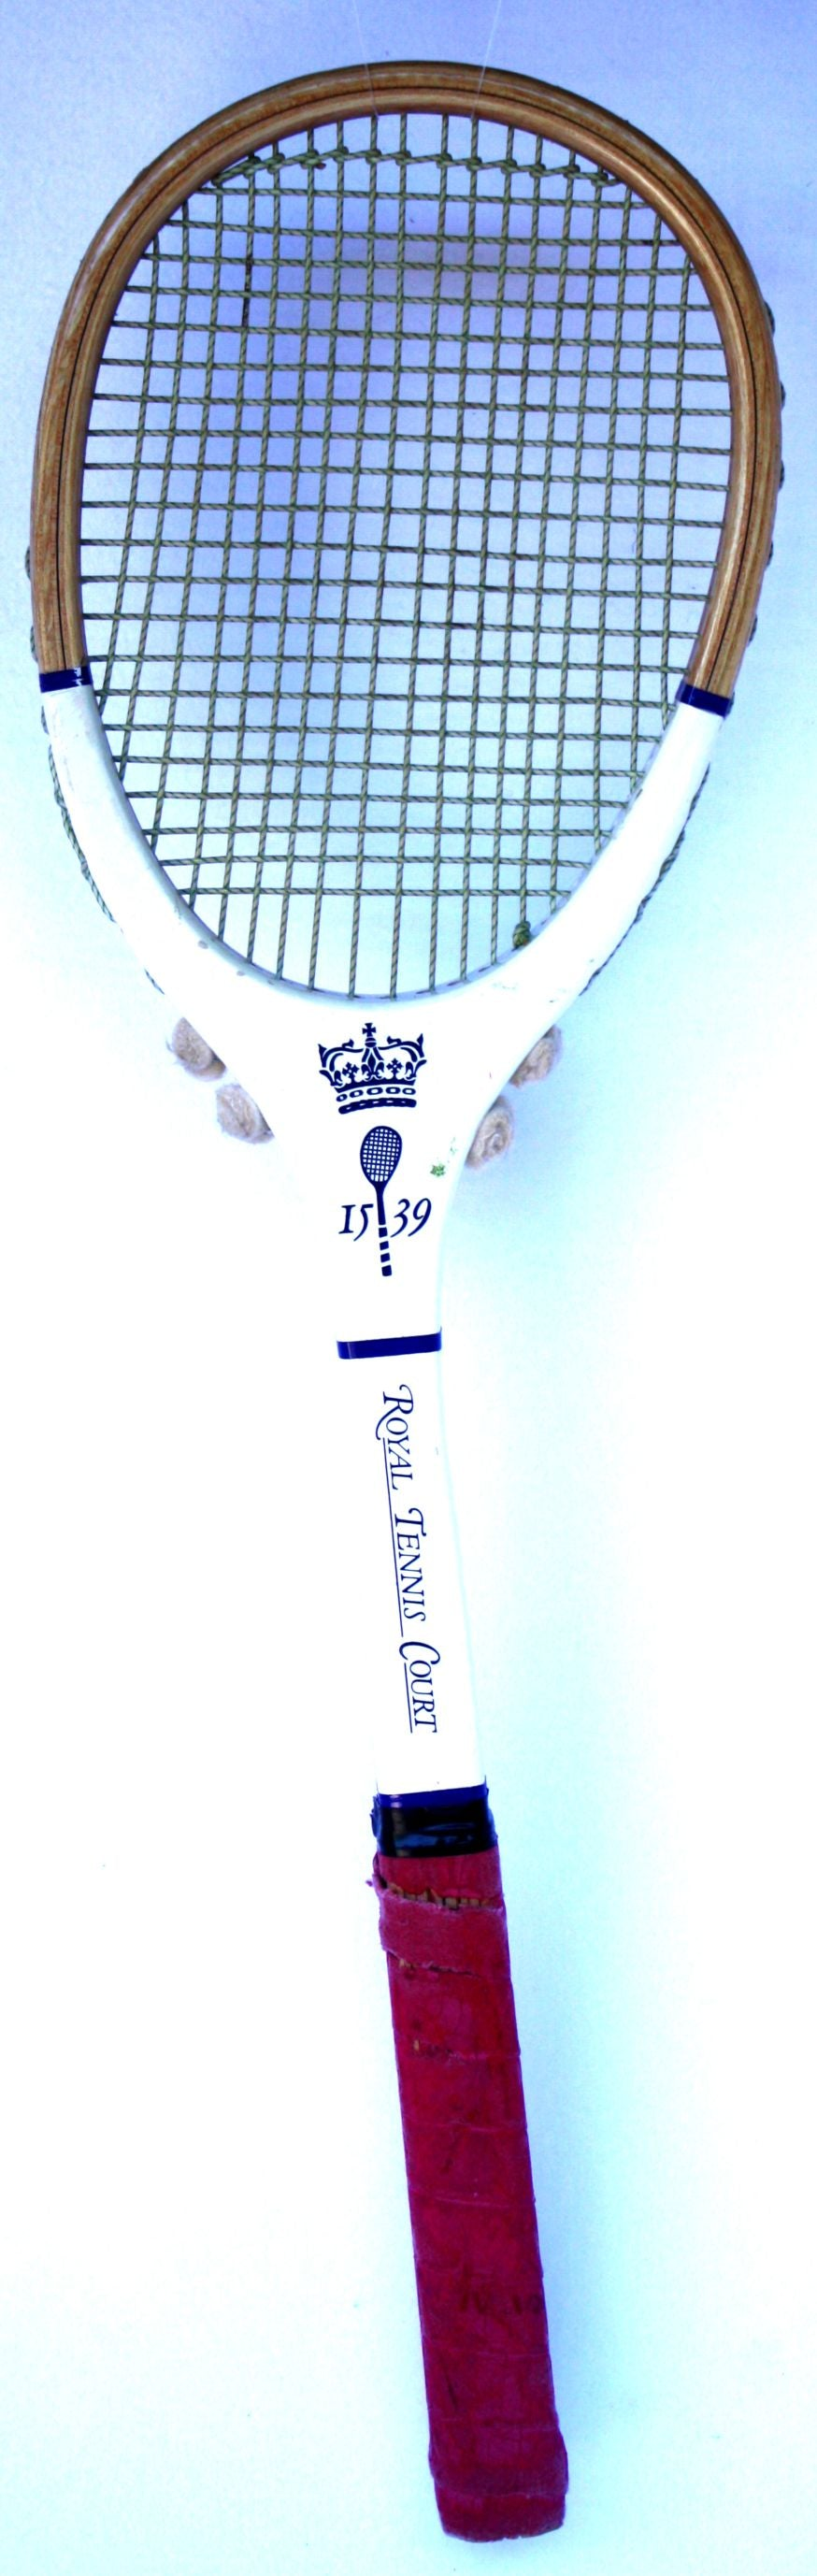 Royal Tennis Court 2